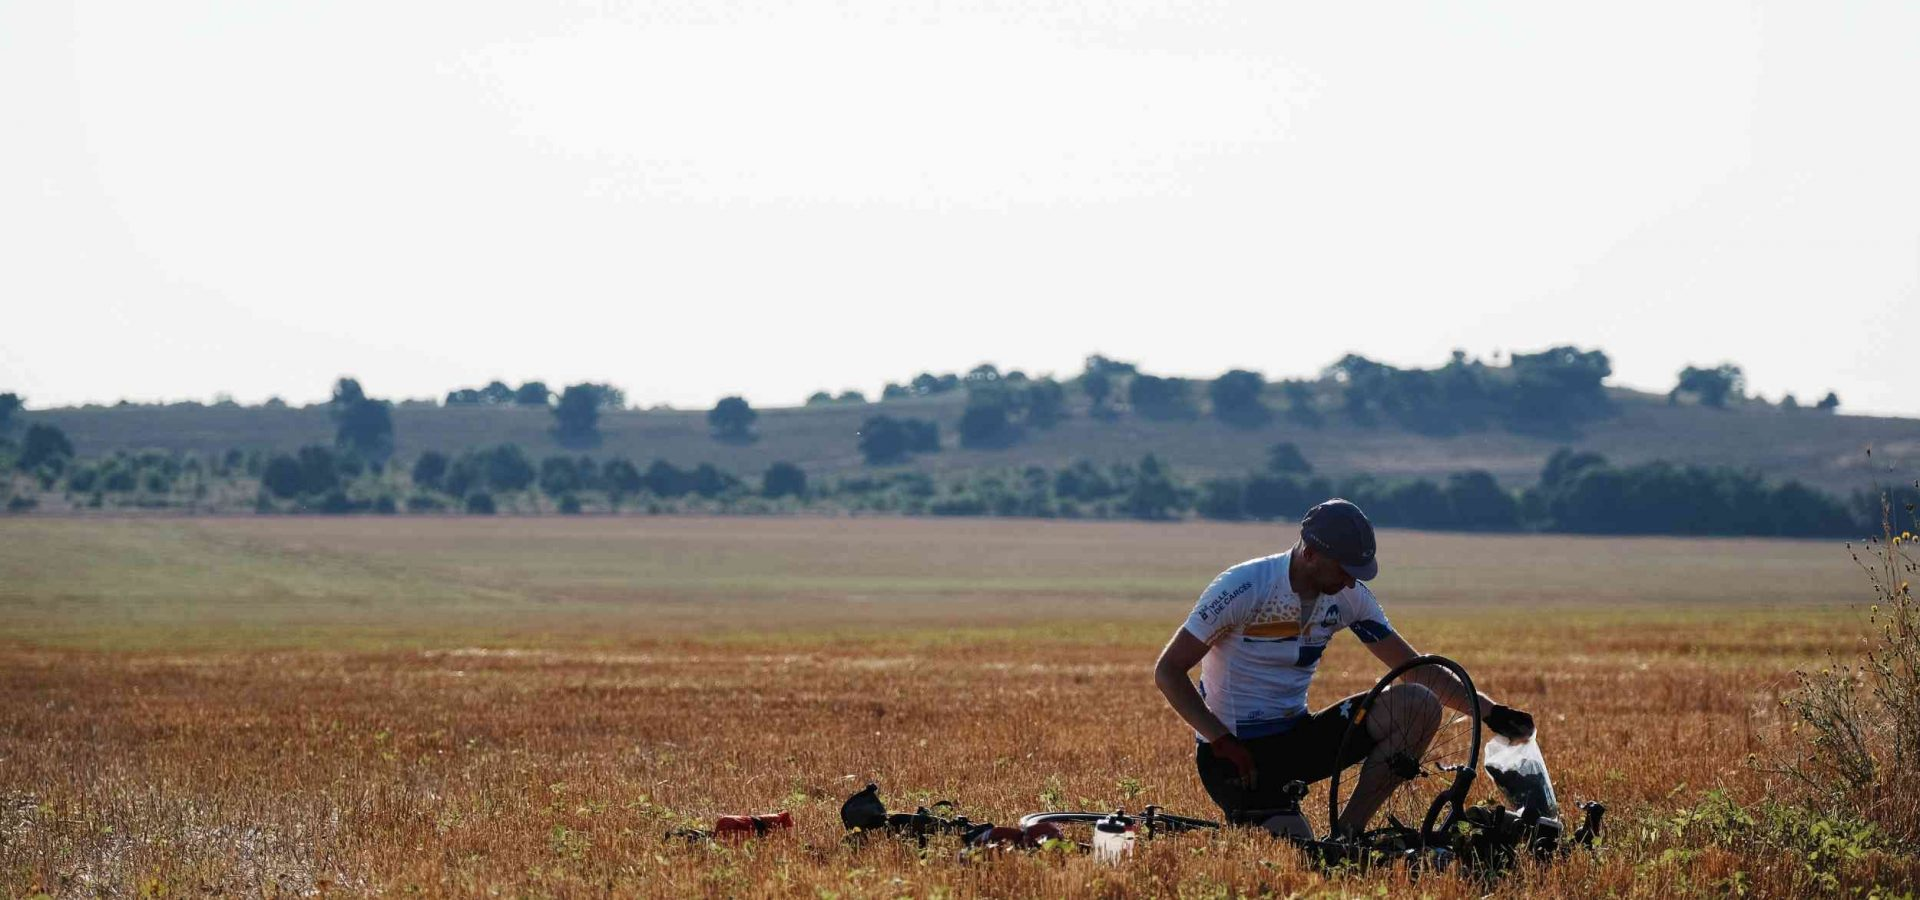 A cyclist sits in a field, repairing a puncture